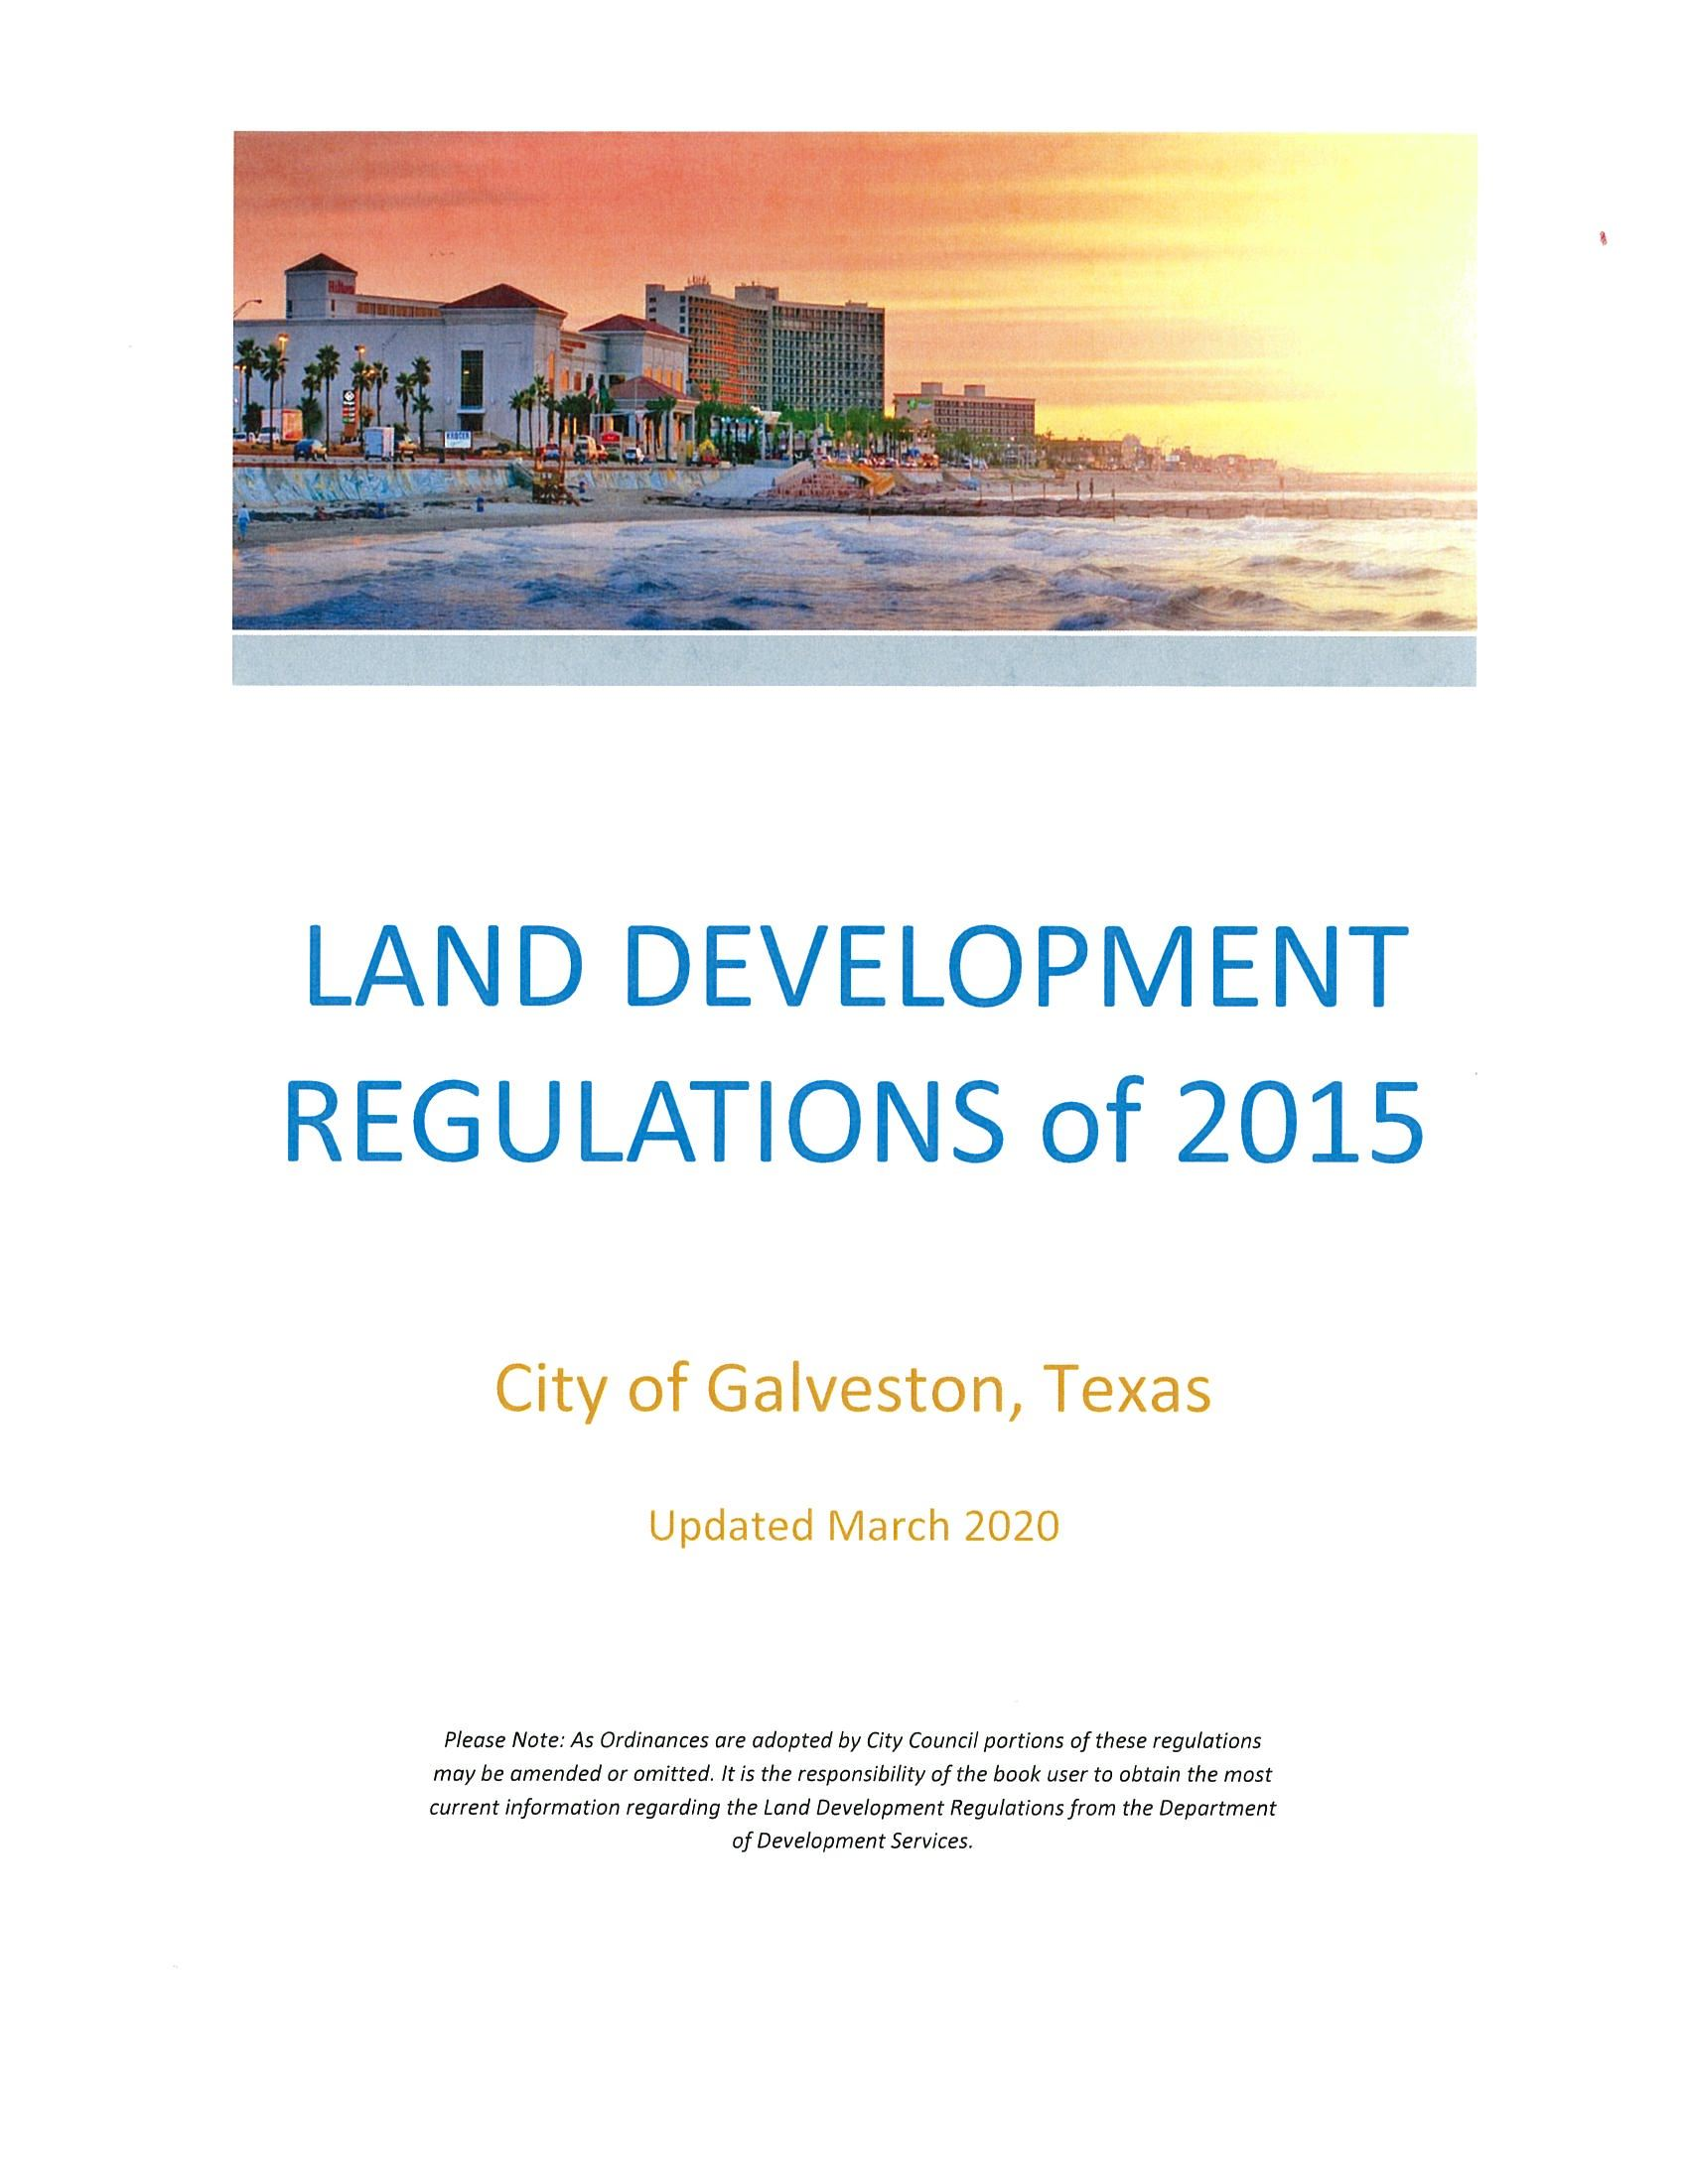 Land Development Regulations Cover - Updated December 2018 Opens in new window